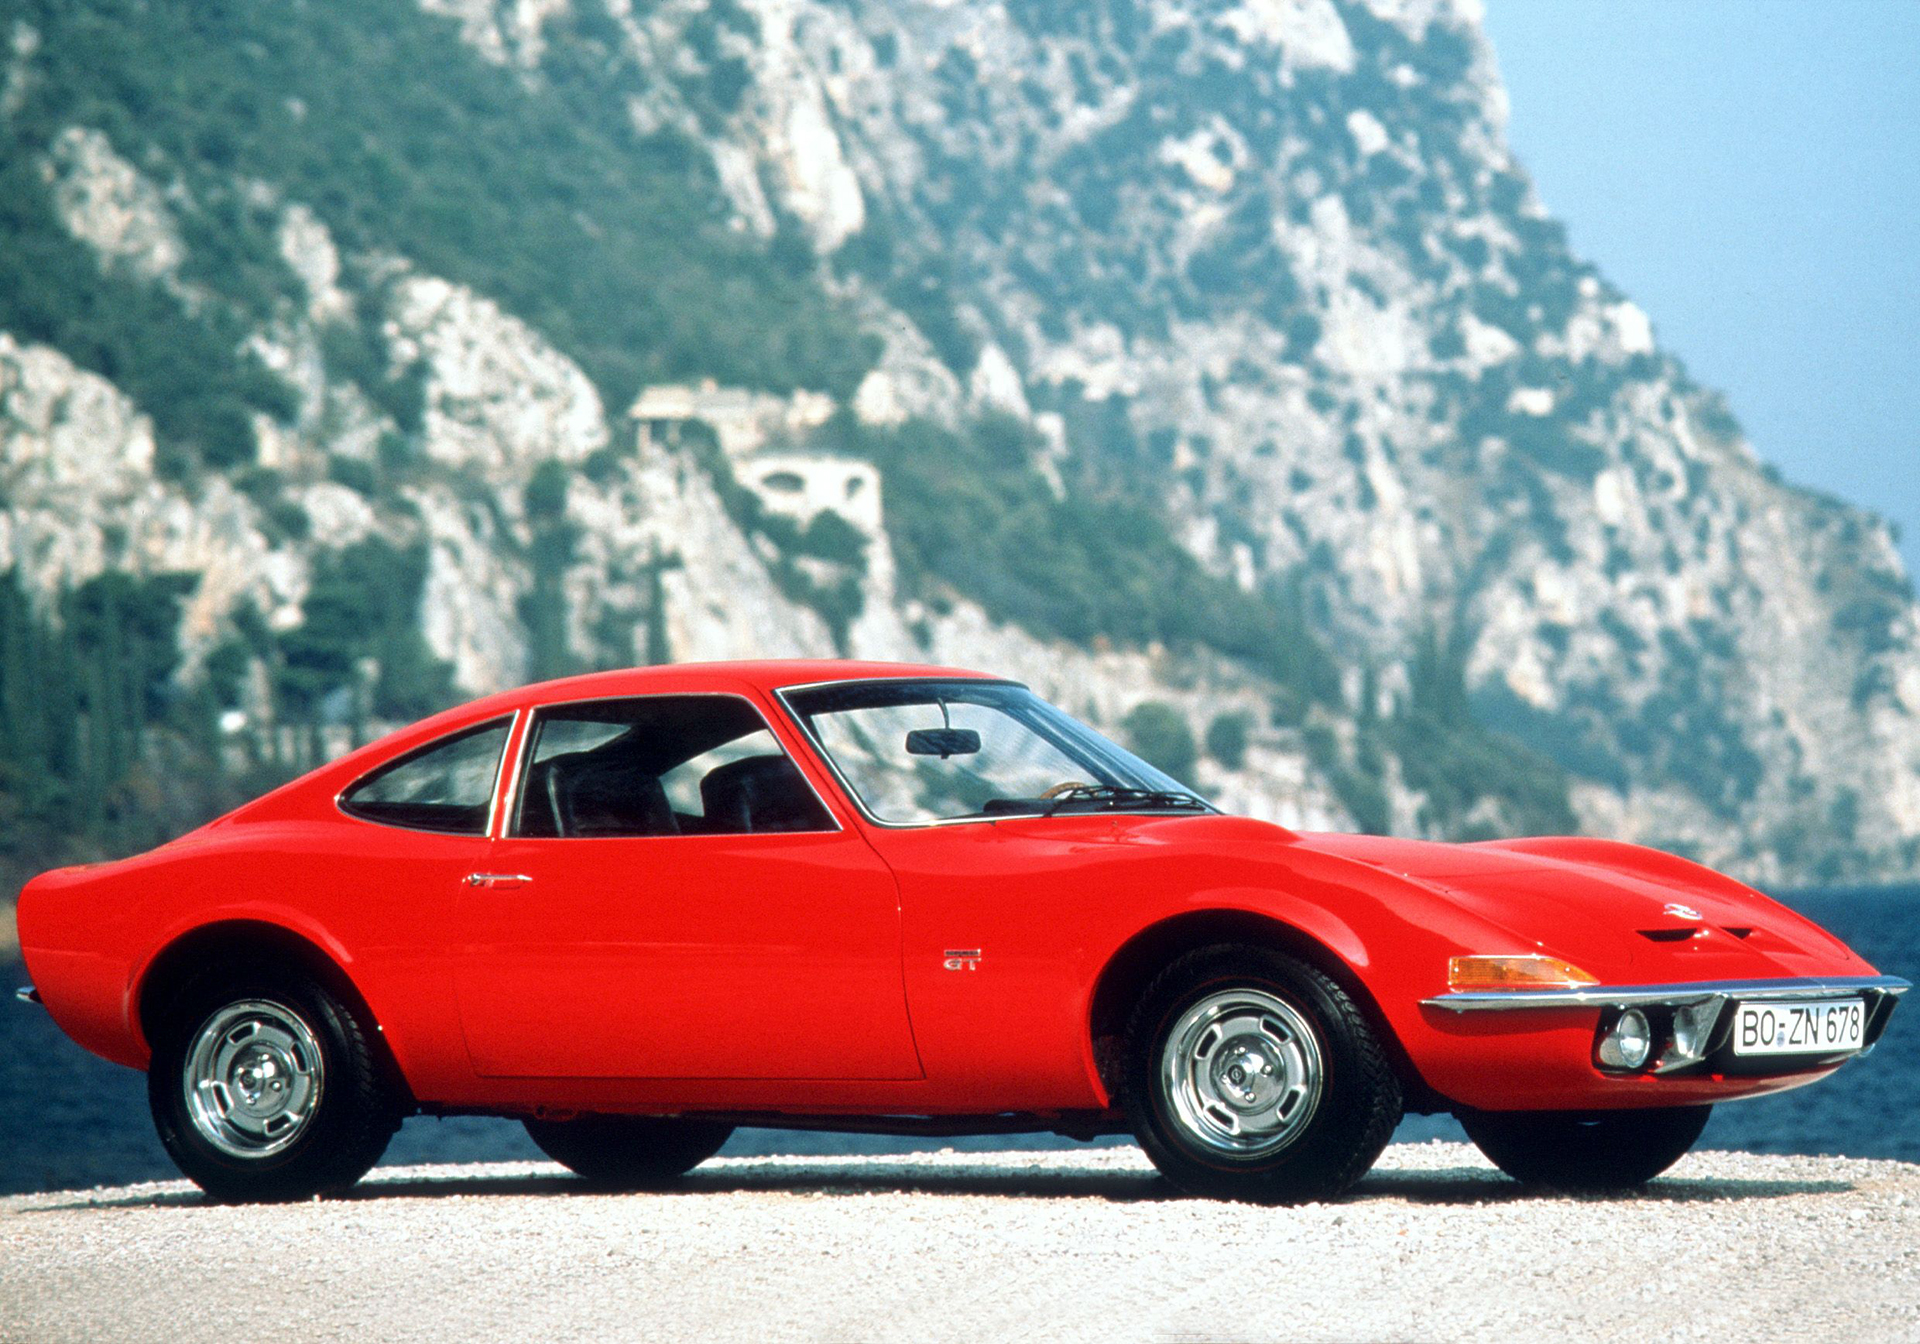 Opel GT - 1968 - avant / front - Image - GM Company.